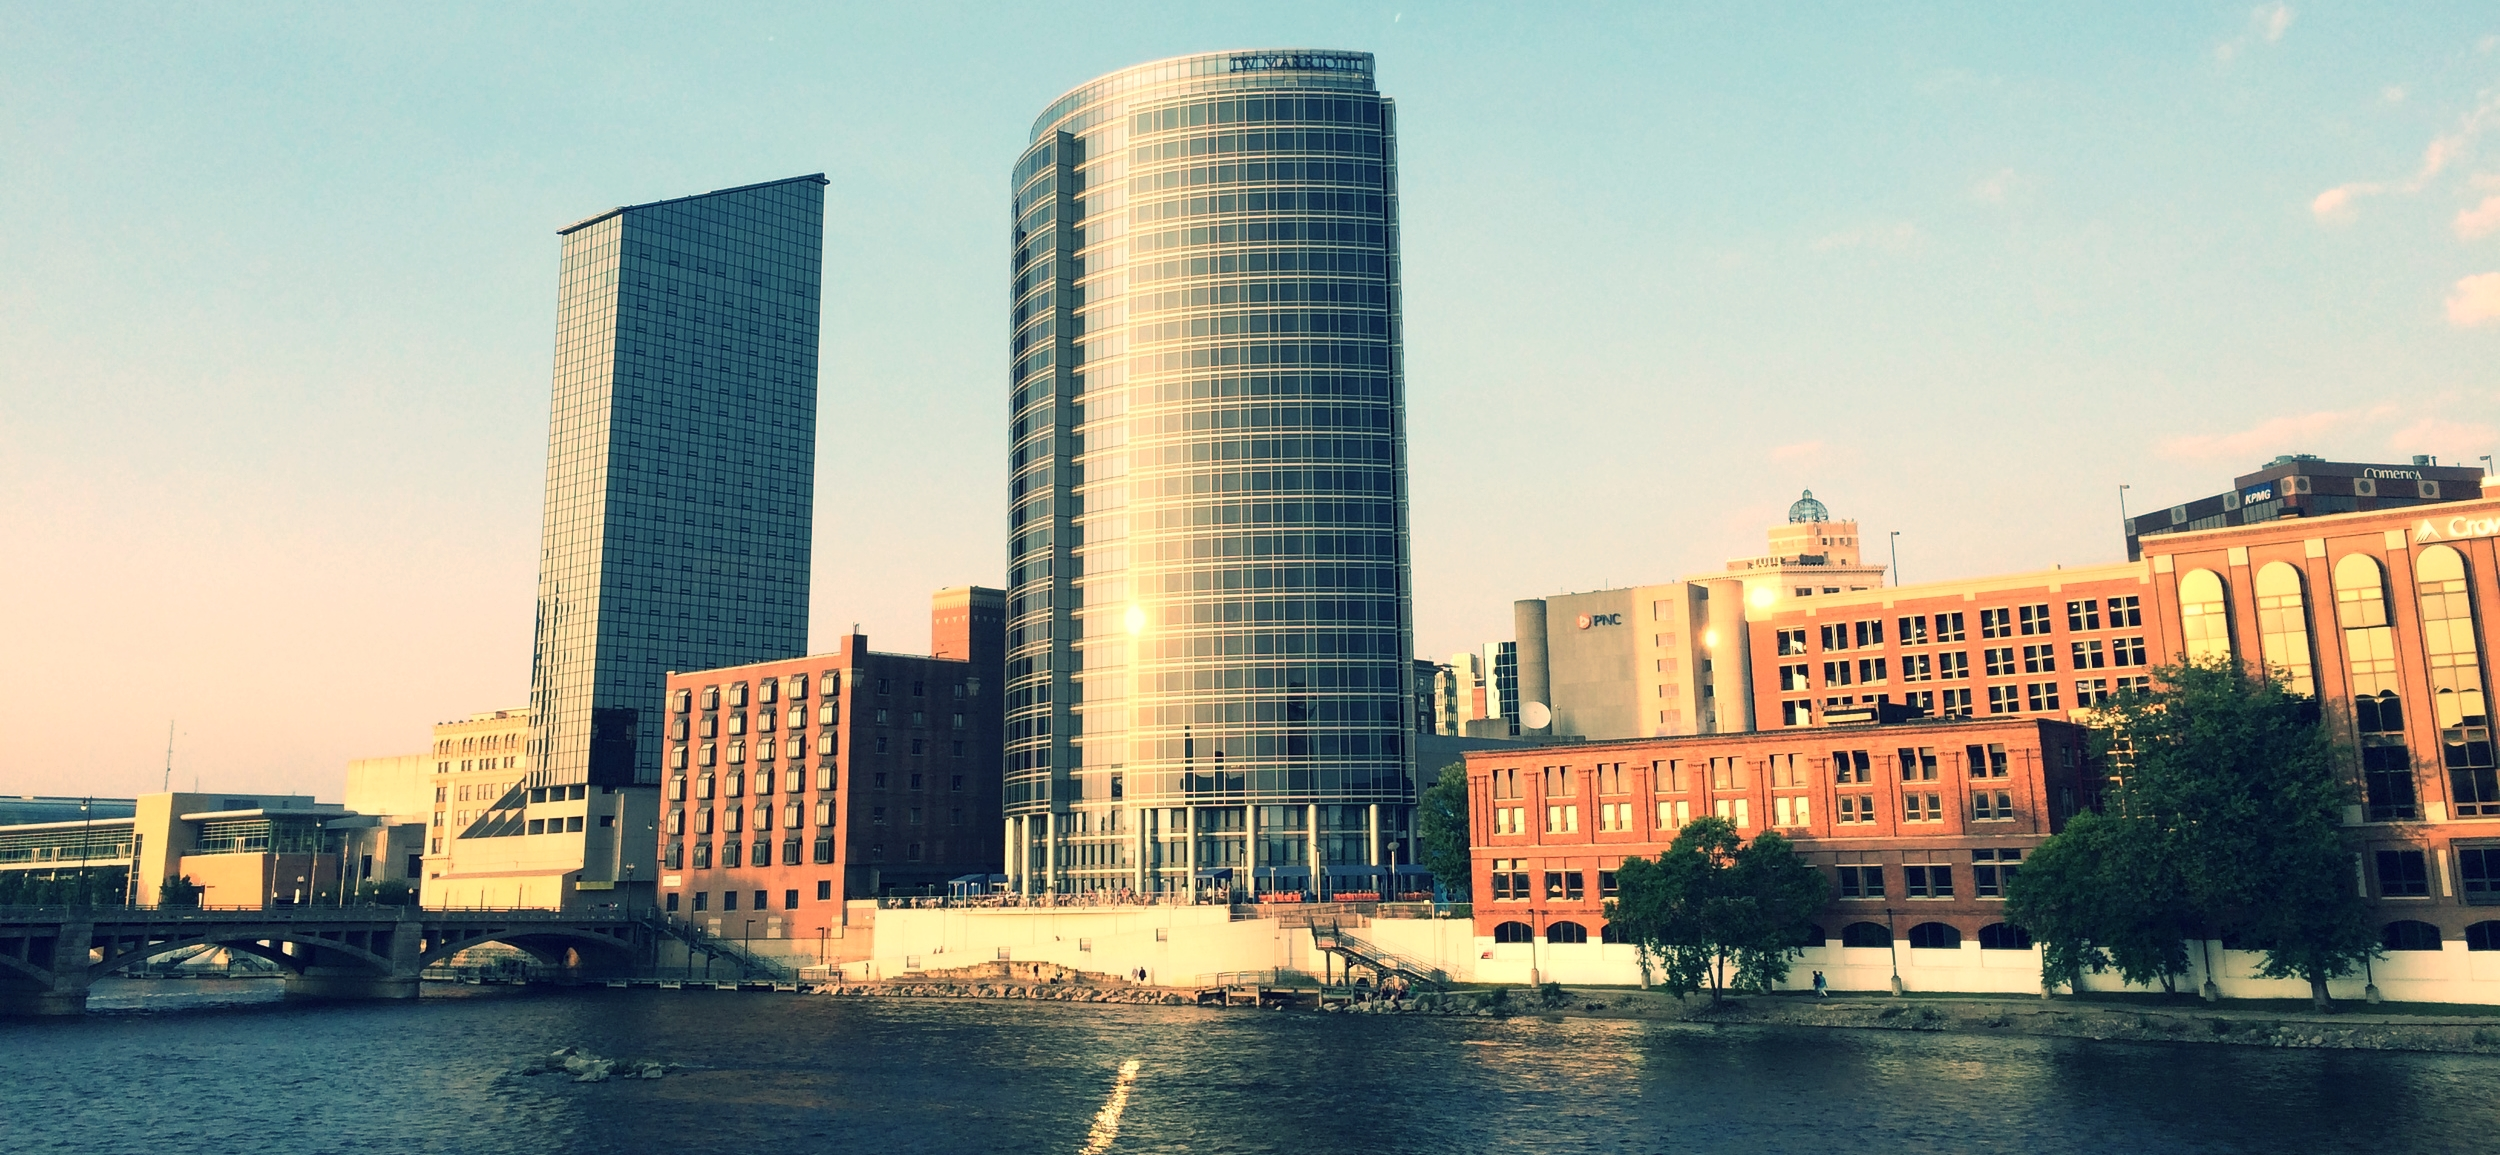 Grand Rapids Car Accident Lawyer